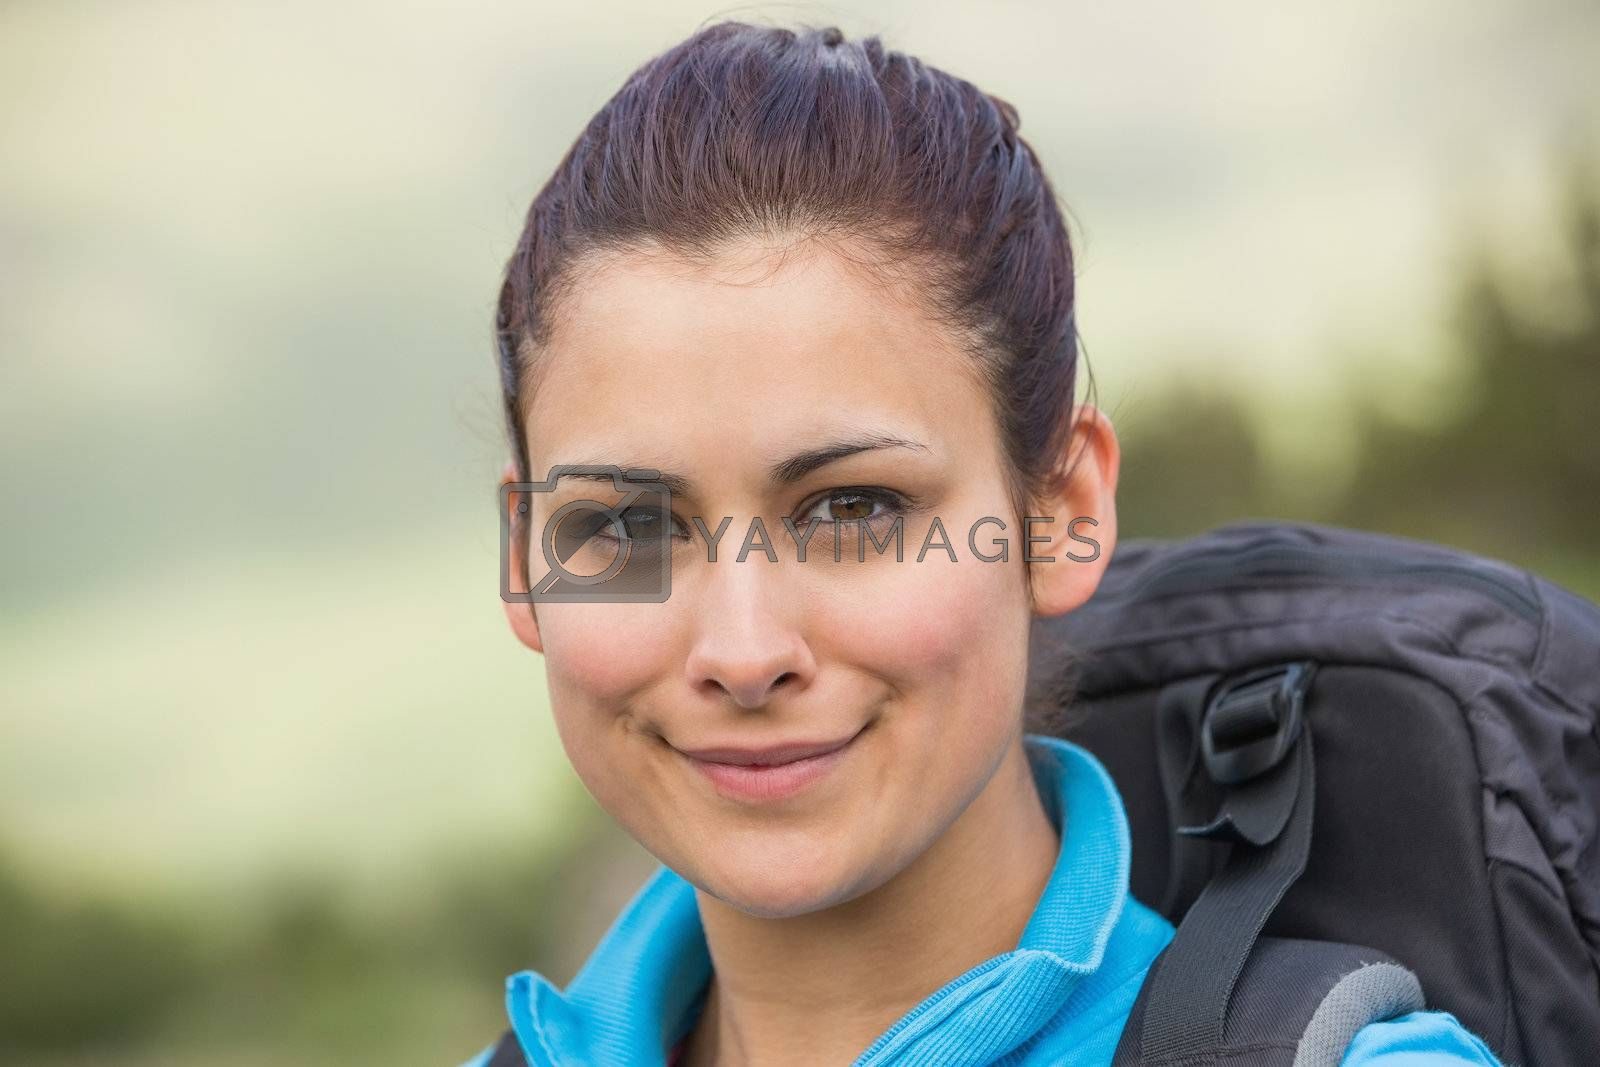 Female hiker with backpack smiling at camera by Wavebreakmedia